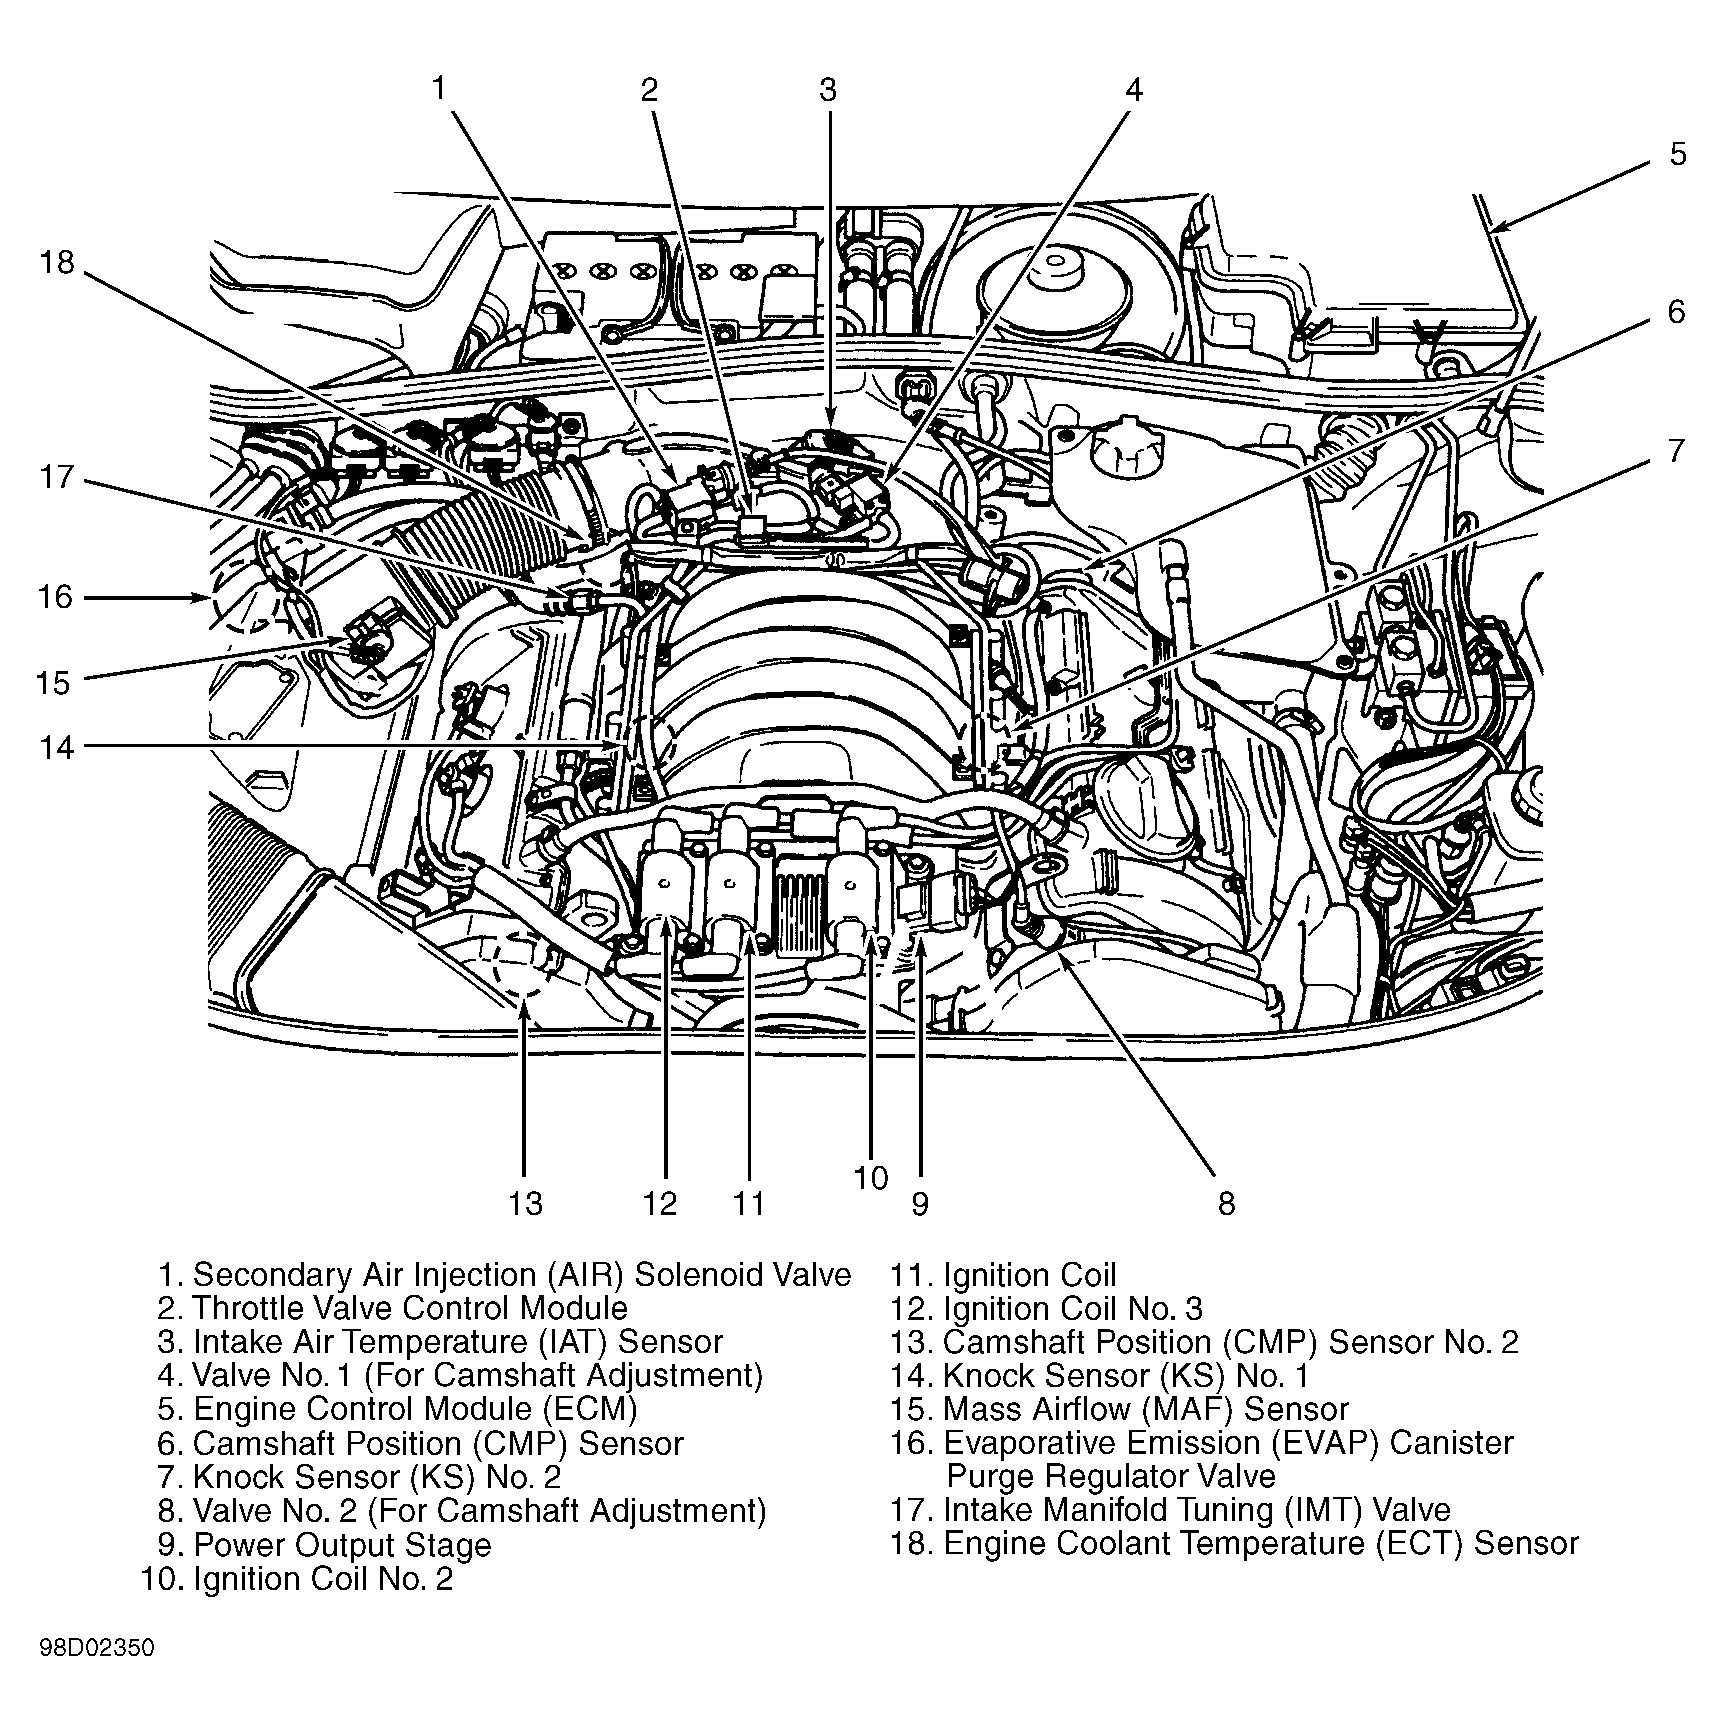 hight resolution of wiring diagram on 2000 dodge grand caravan heater hose diagram 2002 dodge grand caravan engine diagram